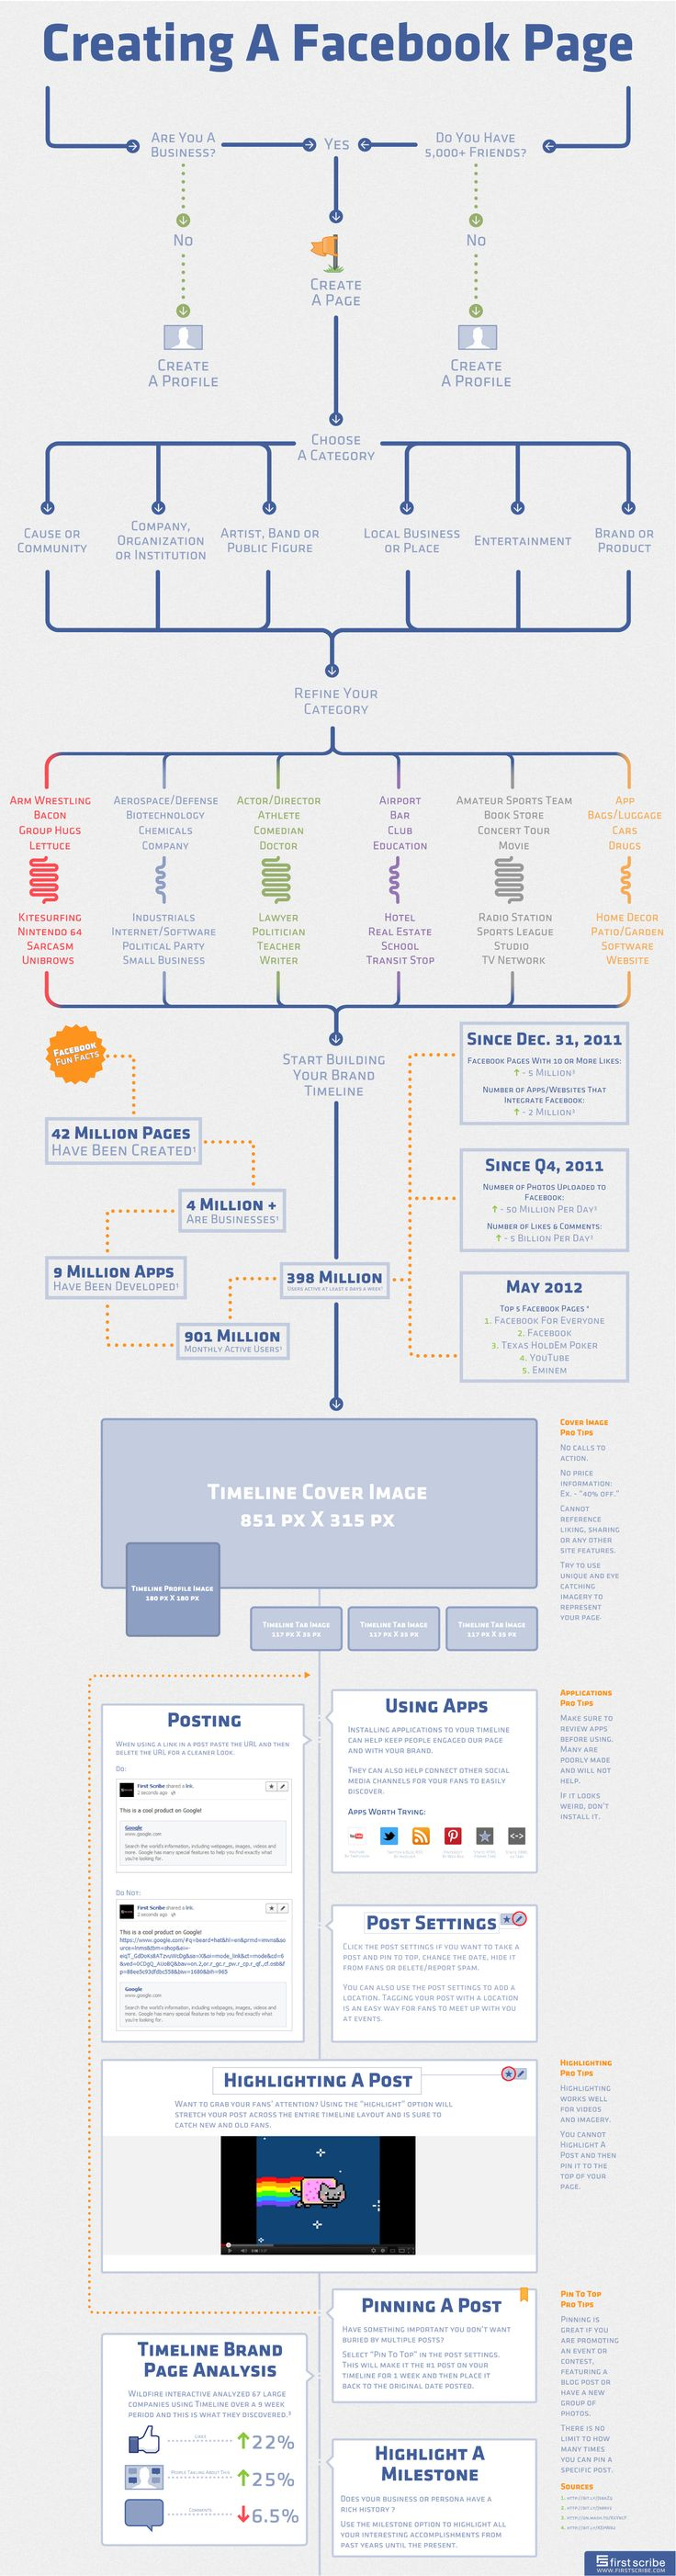 How to Create a Facebook Timeline Fan Page. #Infographic #Tutorial #SocialMedia